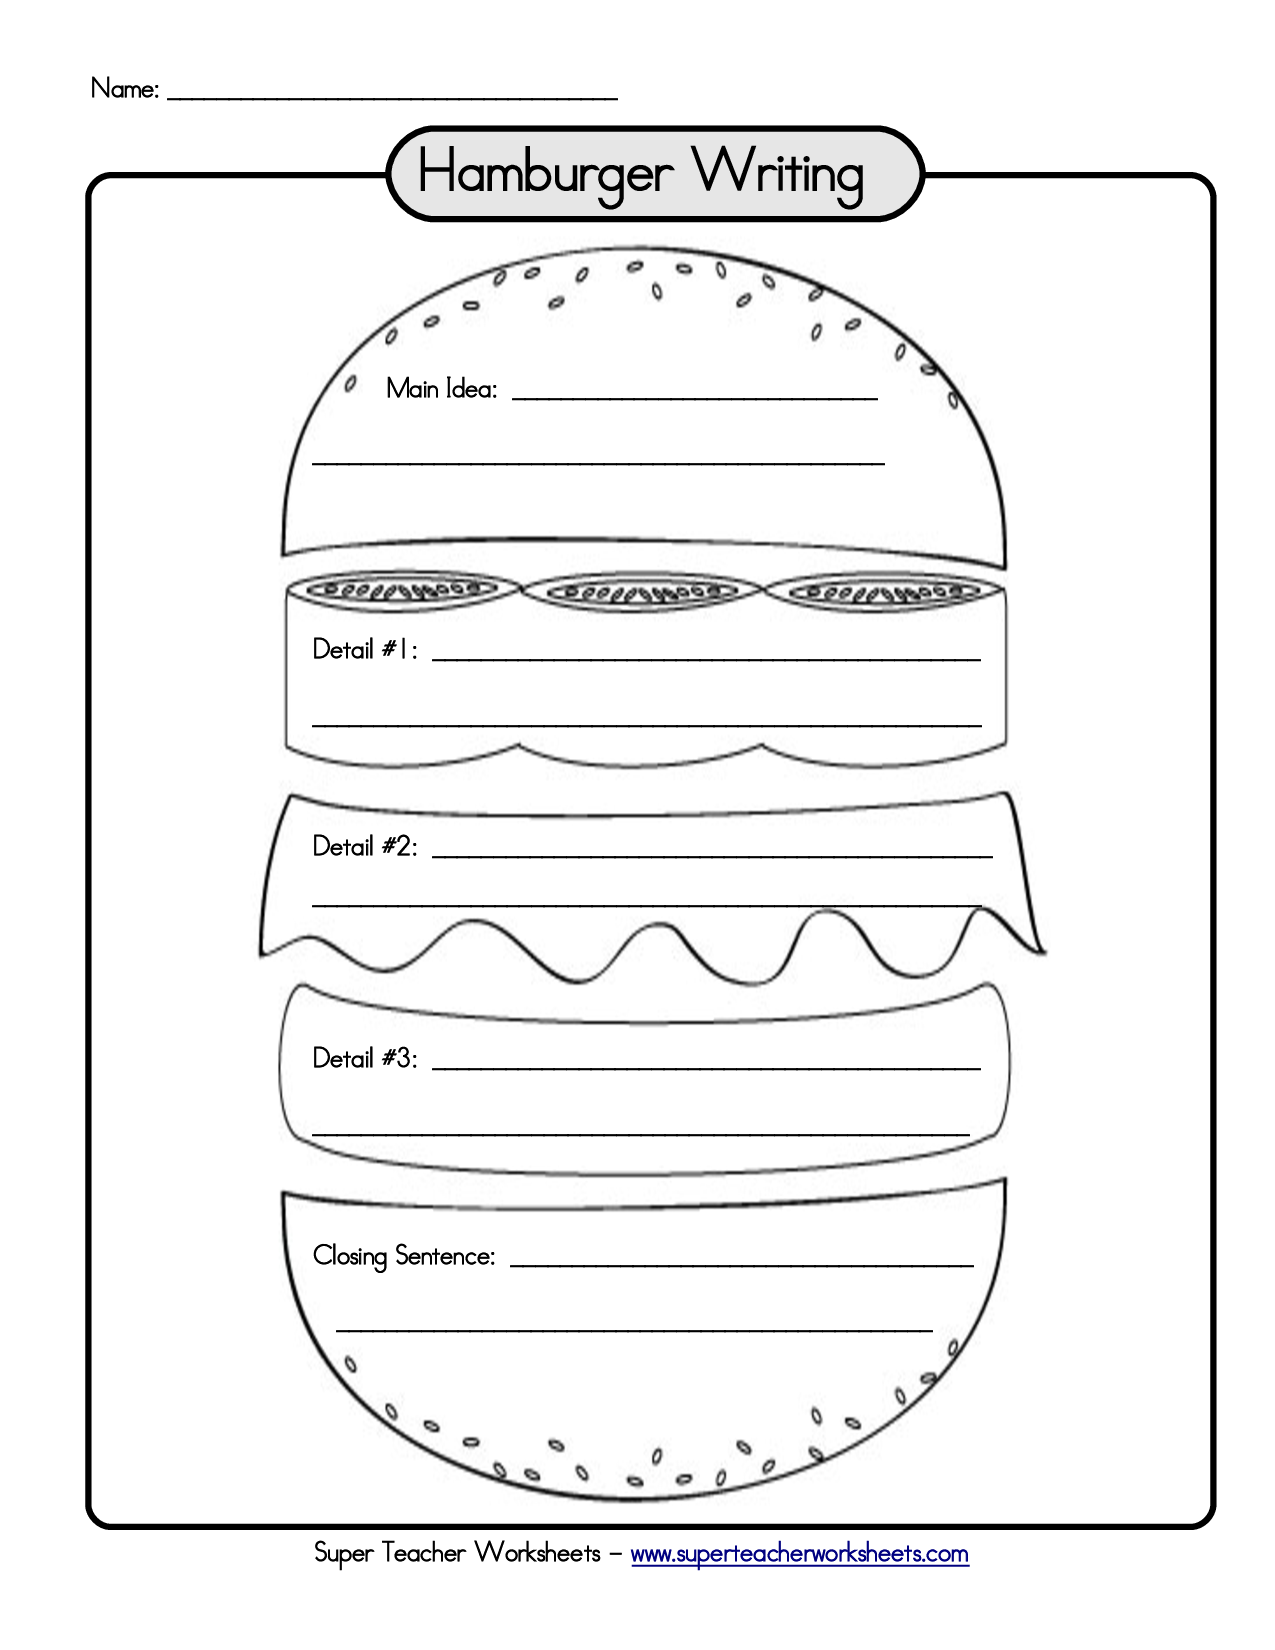 Hamburger Graphic Organizer Writing Paragraph Links To A